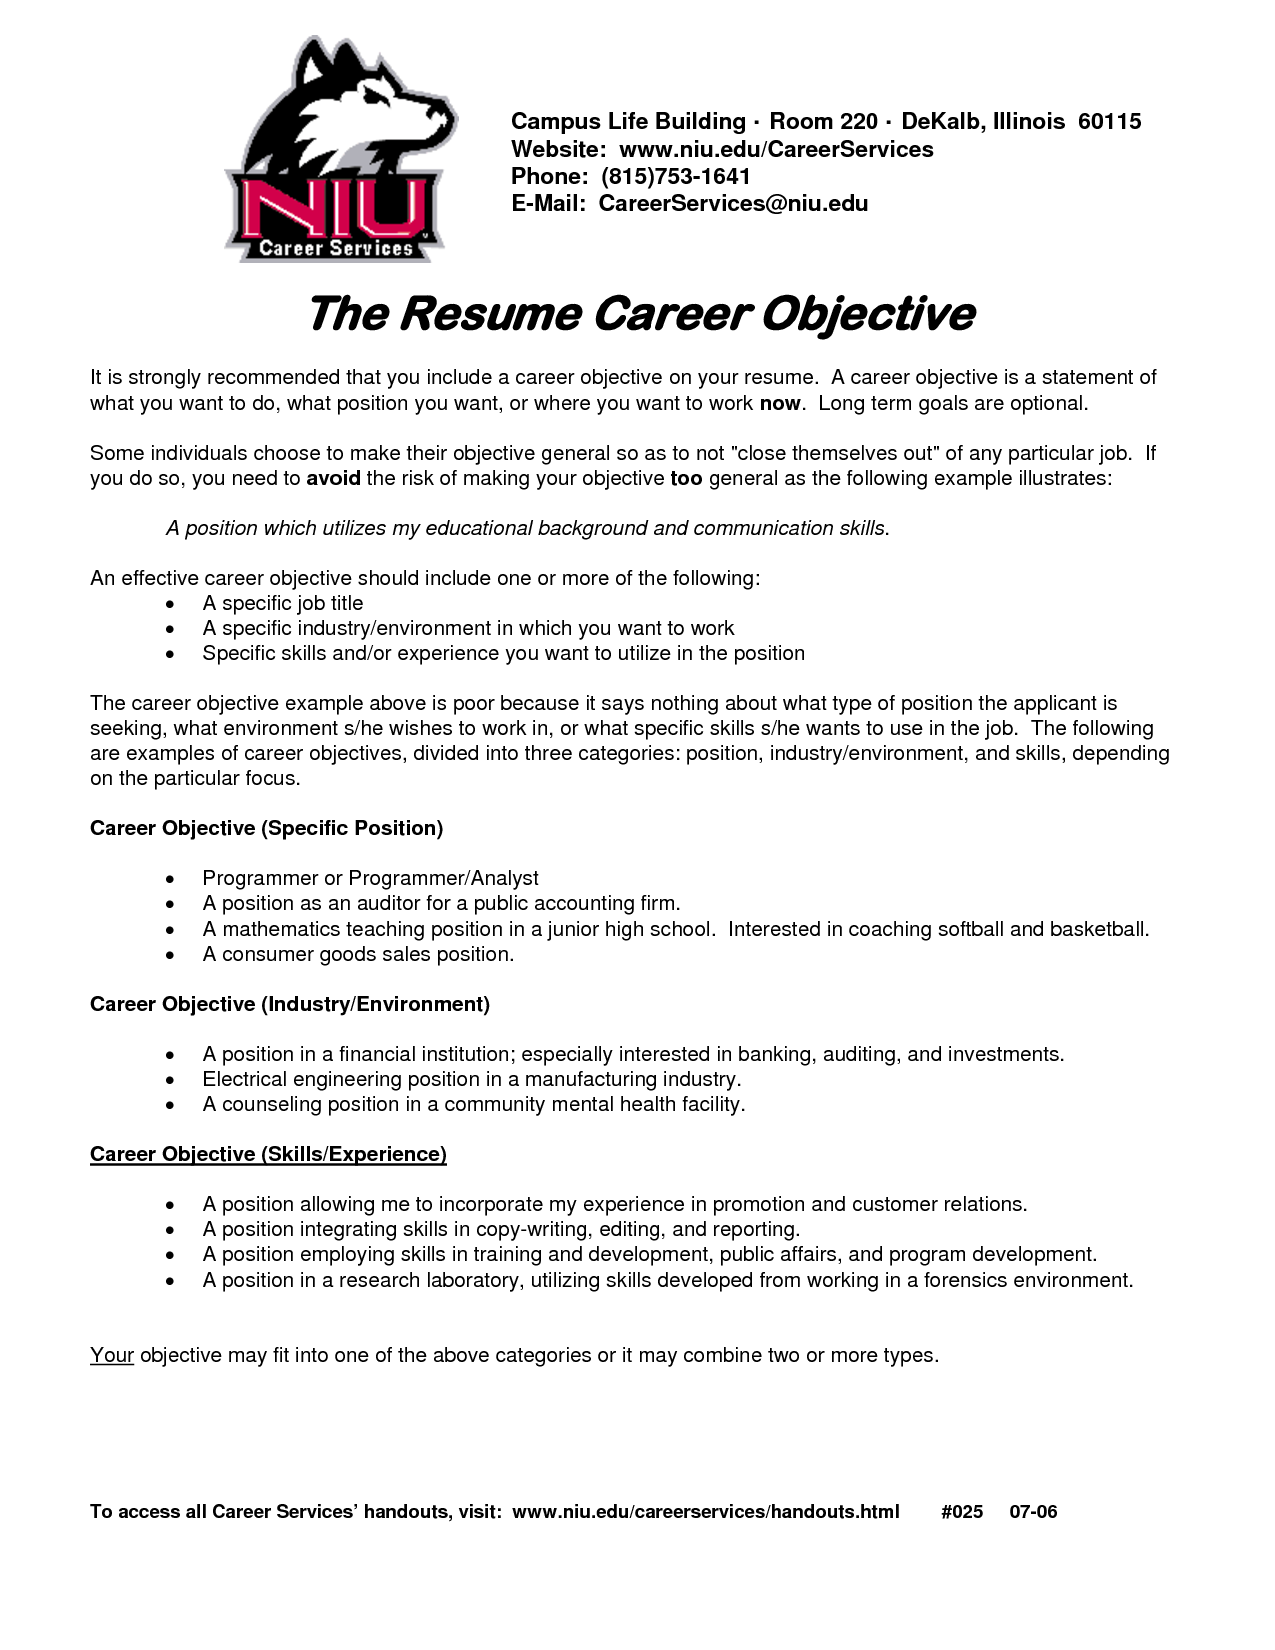 Objective Of Resume Httpswwwgooglesearchqobjective Resume  Resume